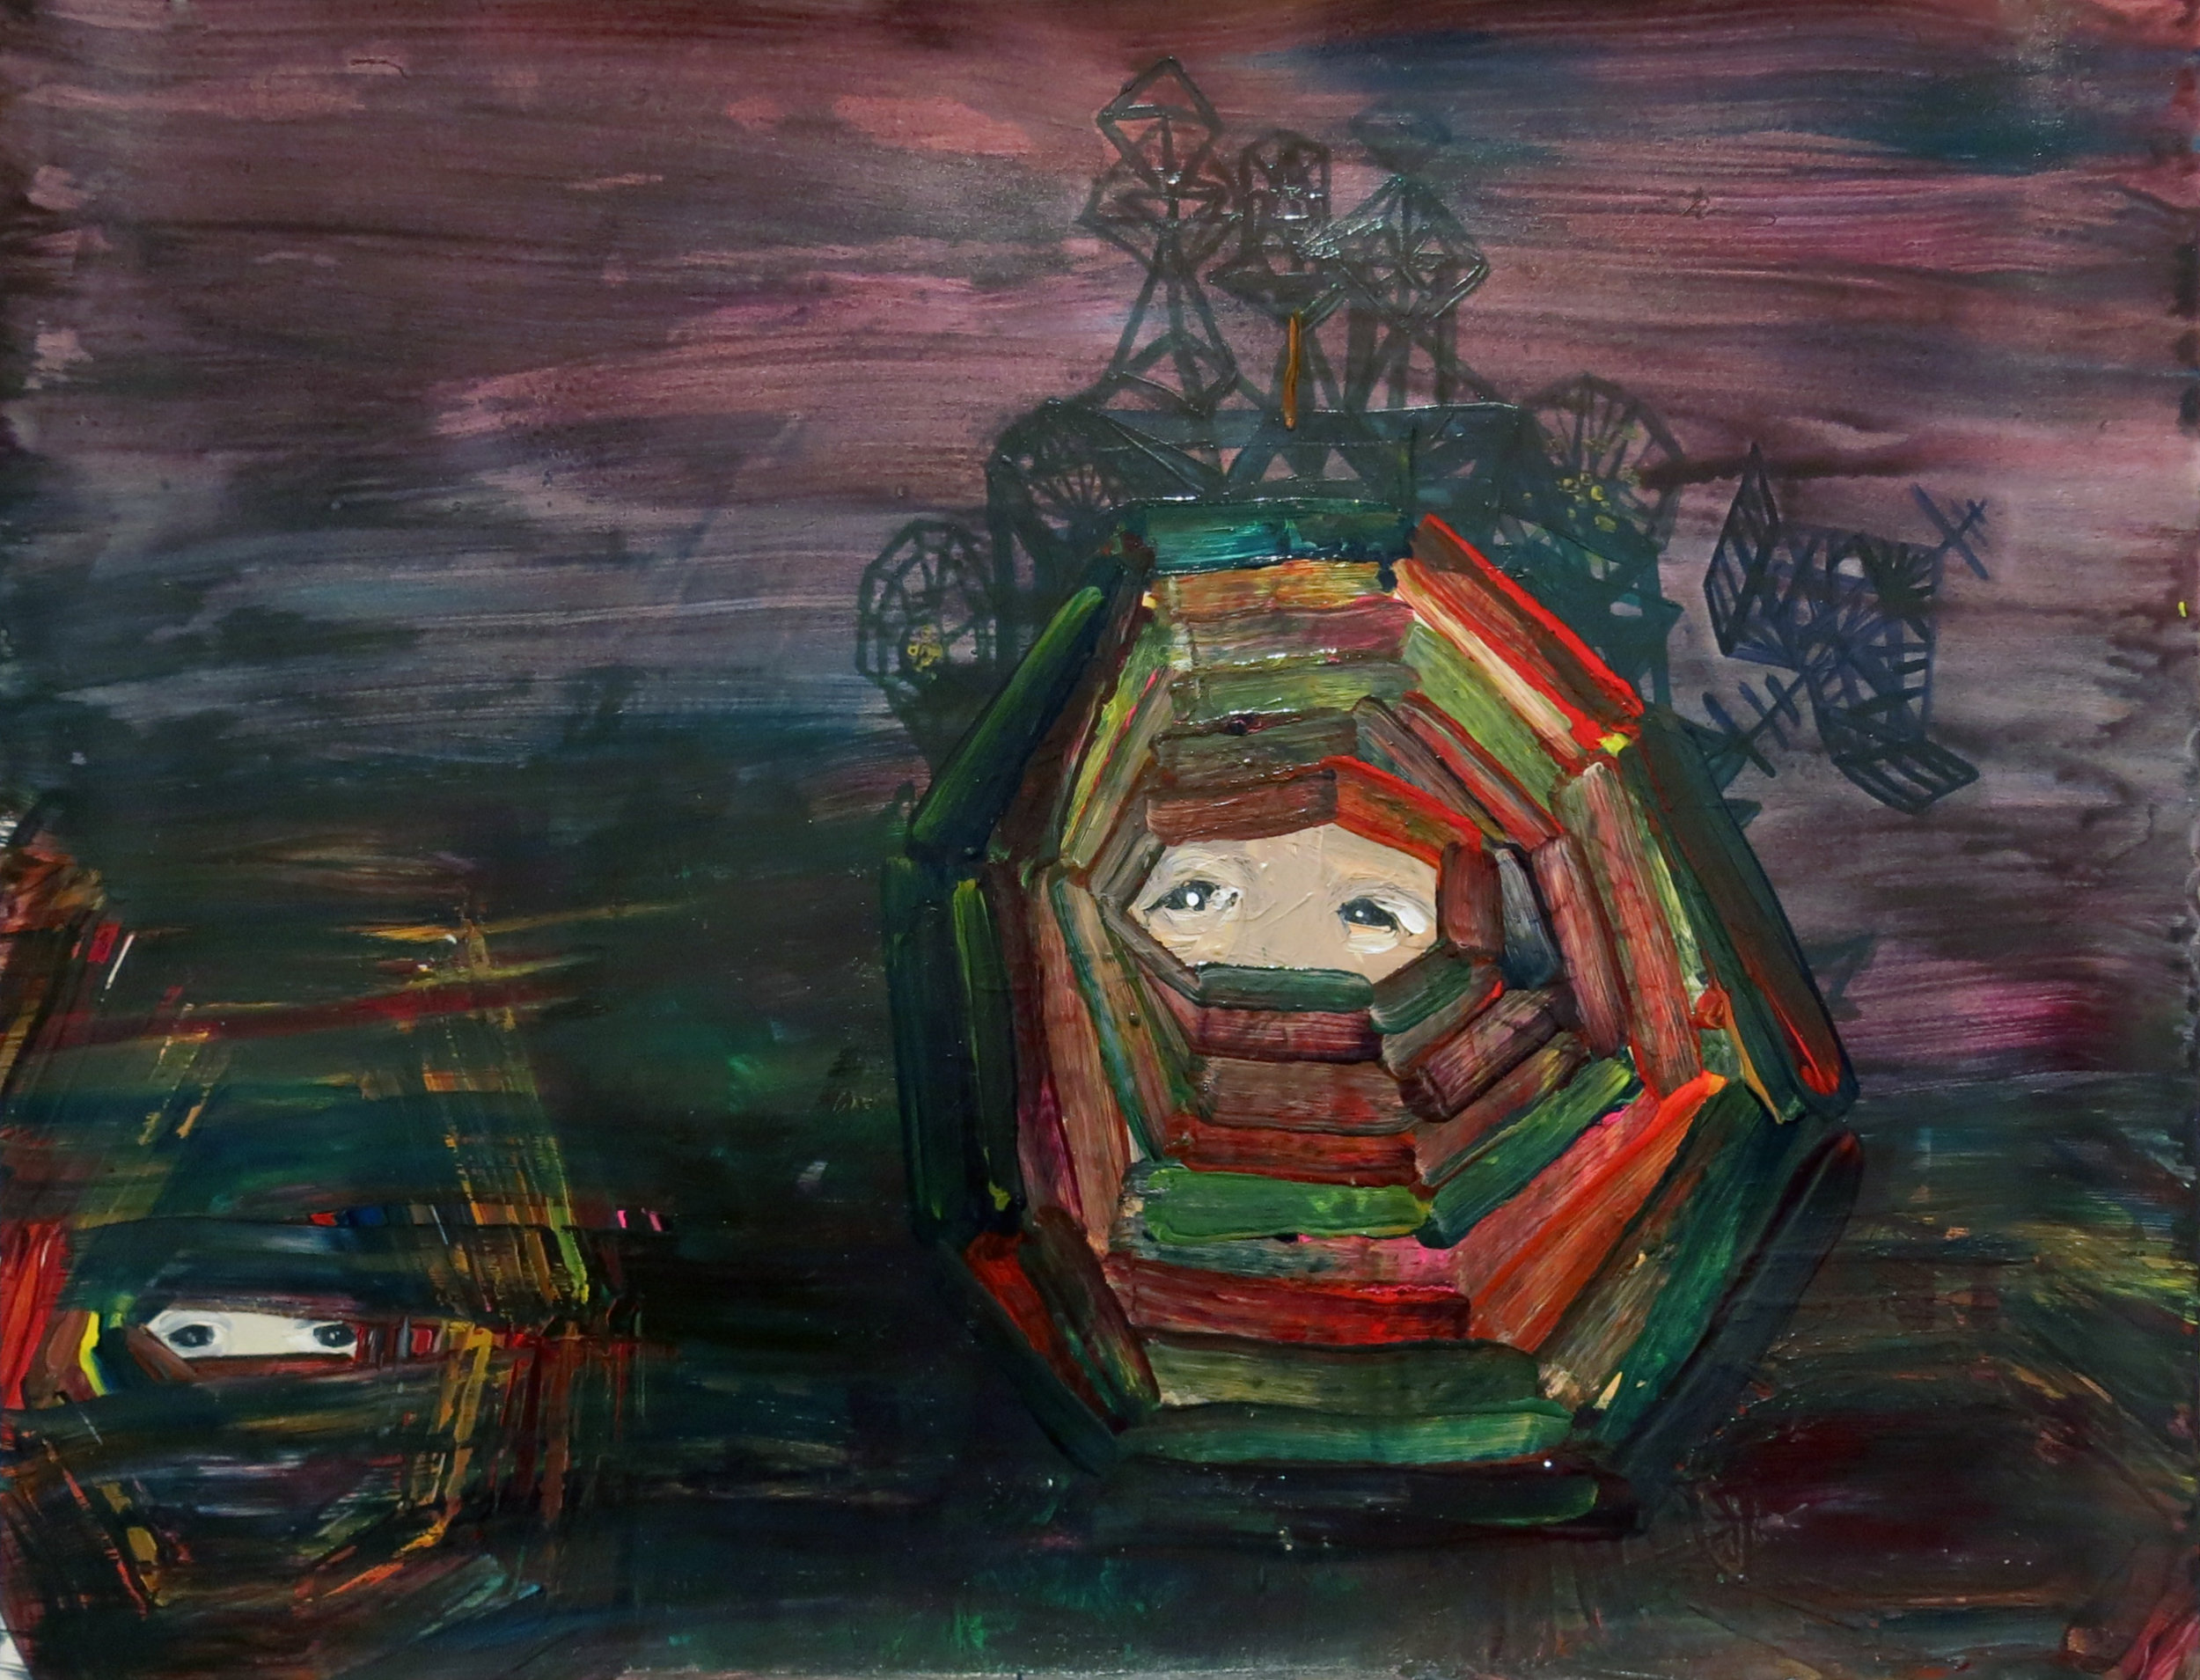 Sarah Gamble, Untitled, 2012, mixed media on paper, 18h x 24w in.